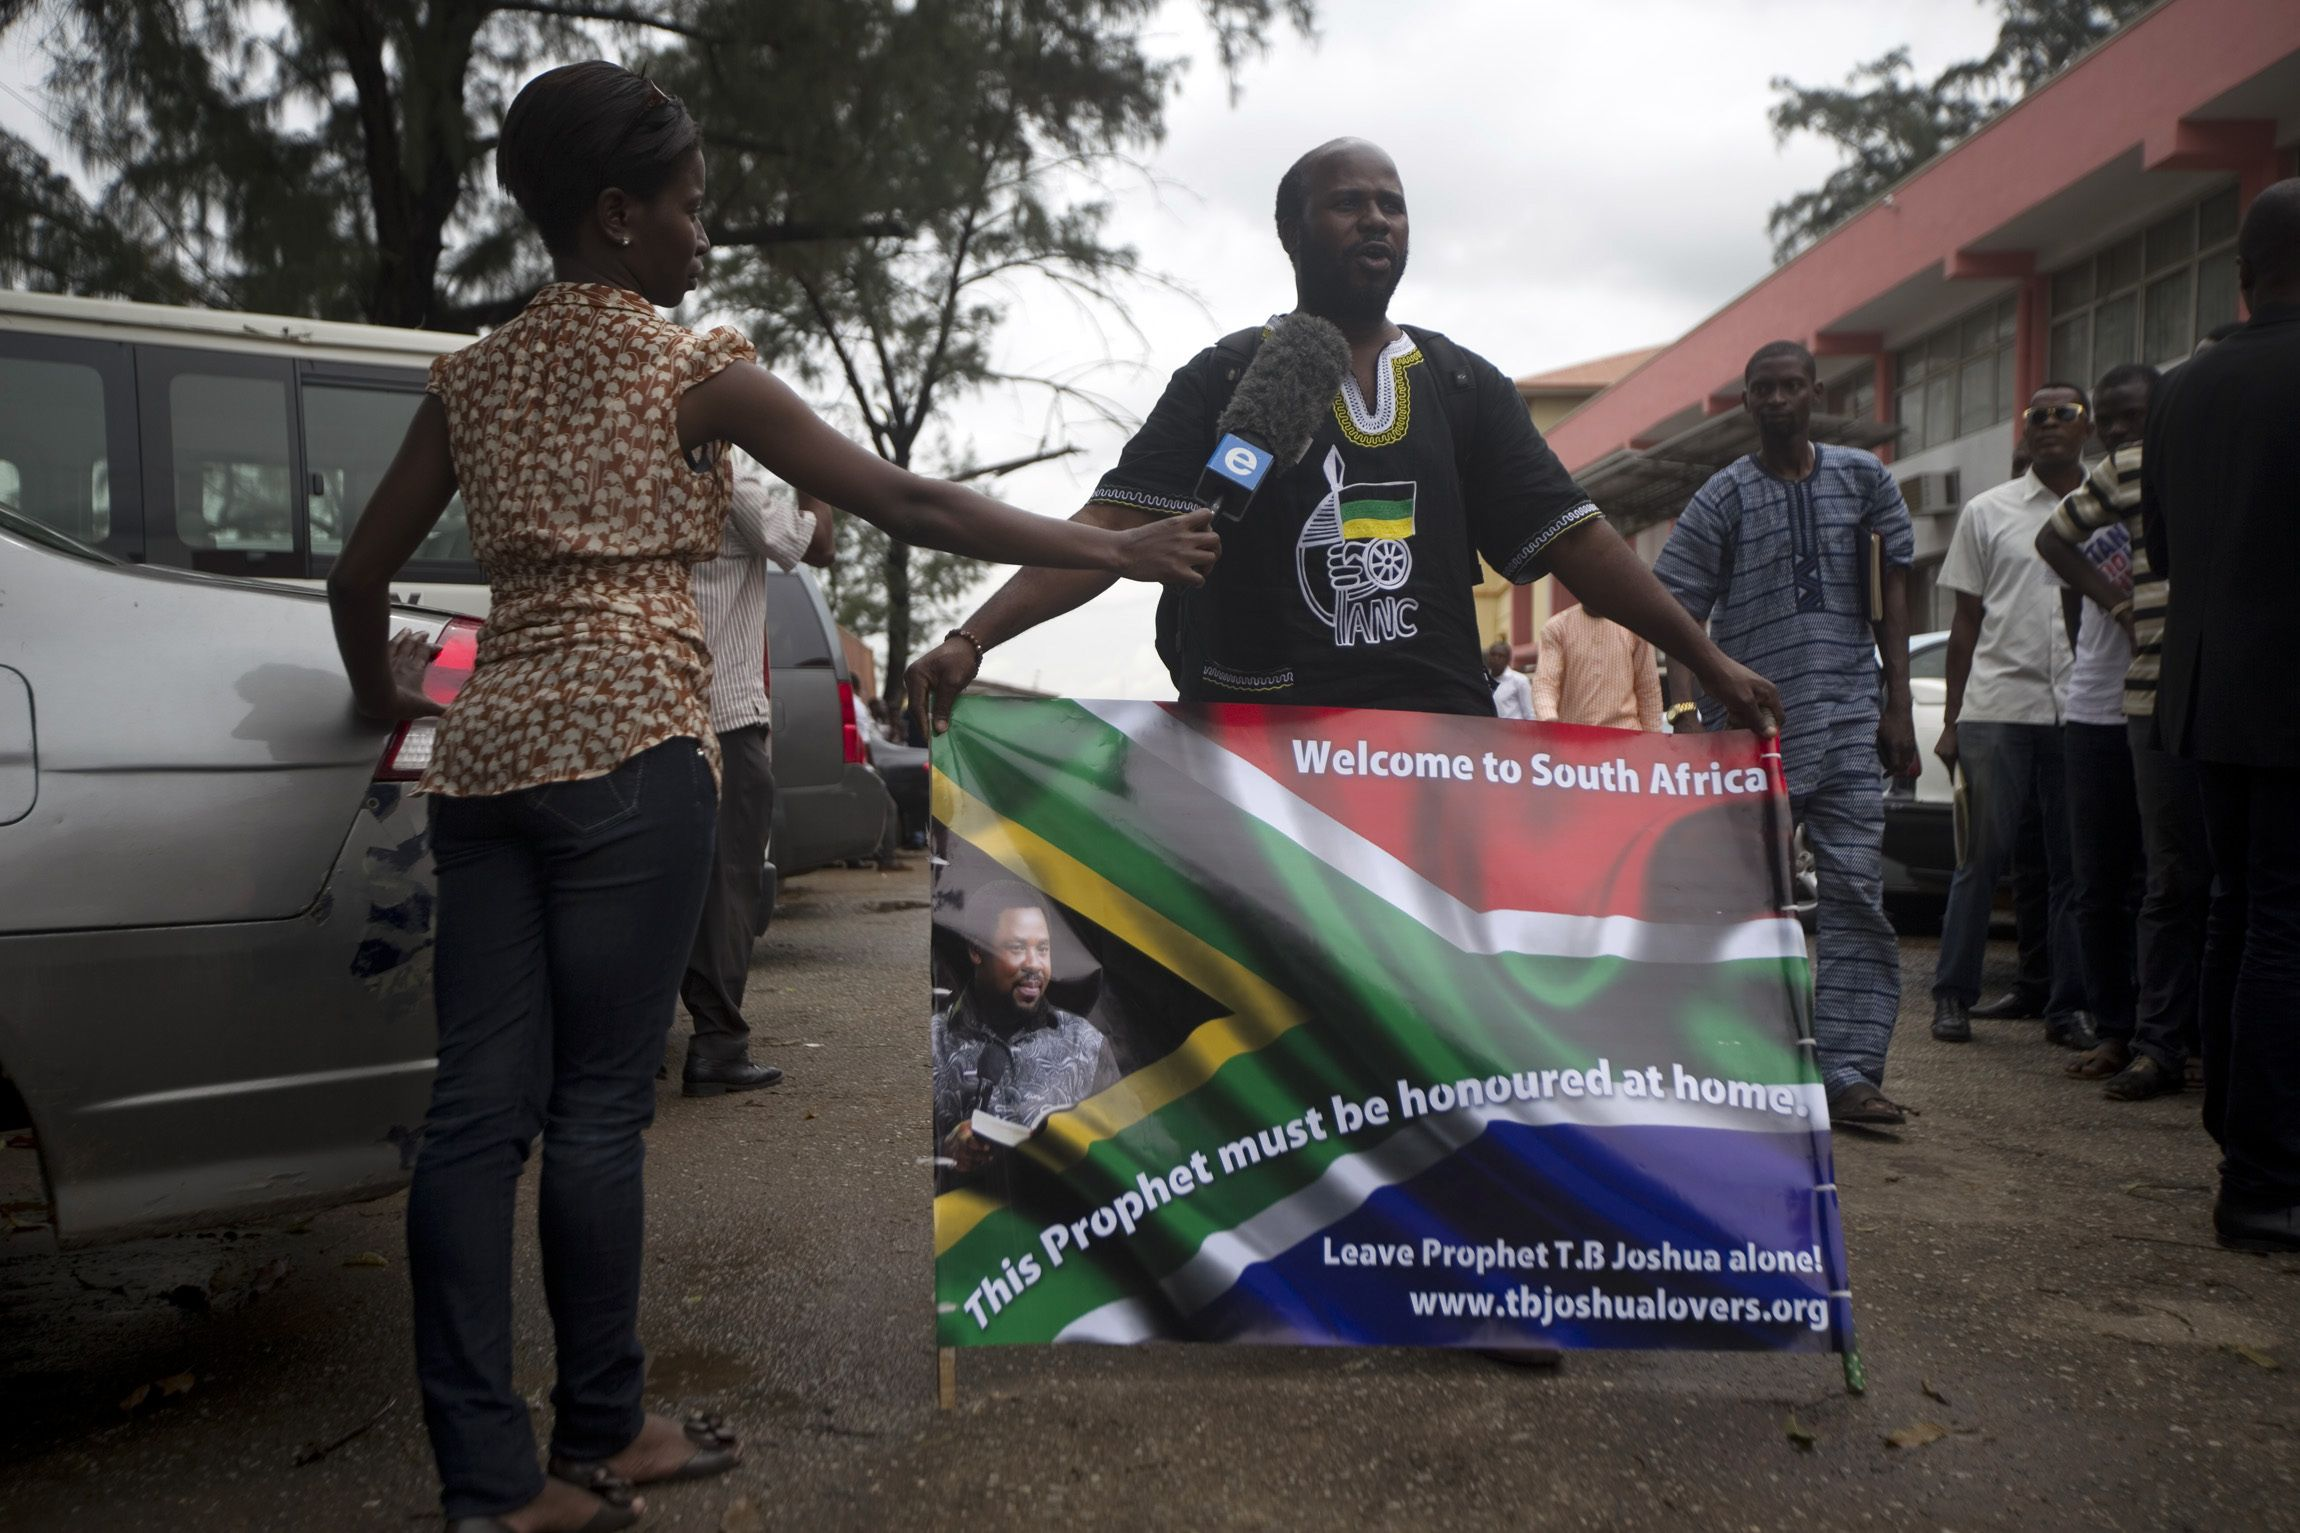 South African supporter of TB Joshua